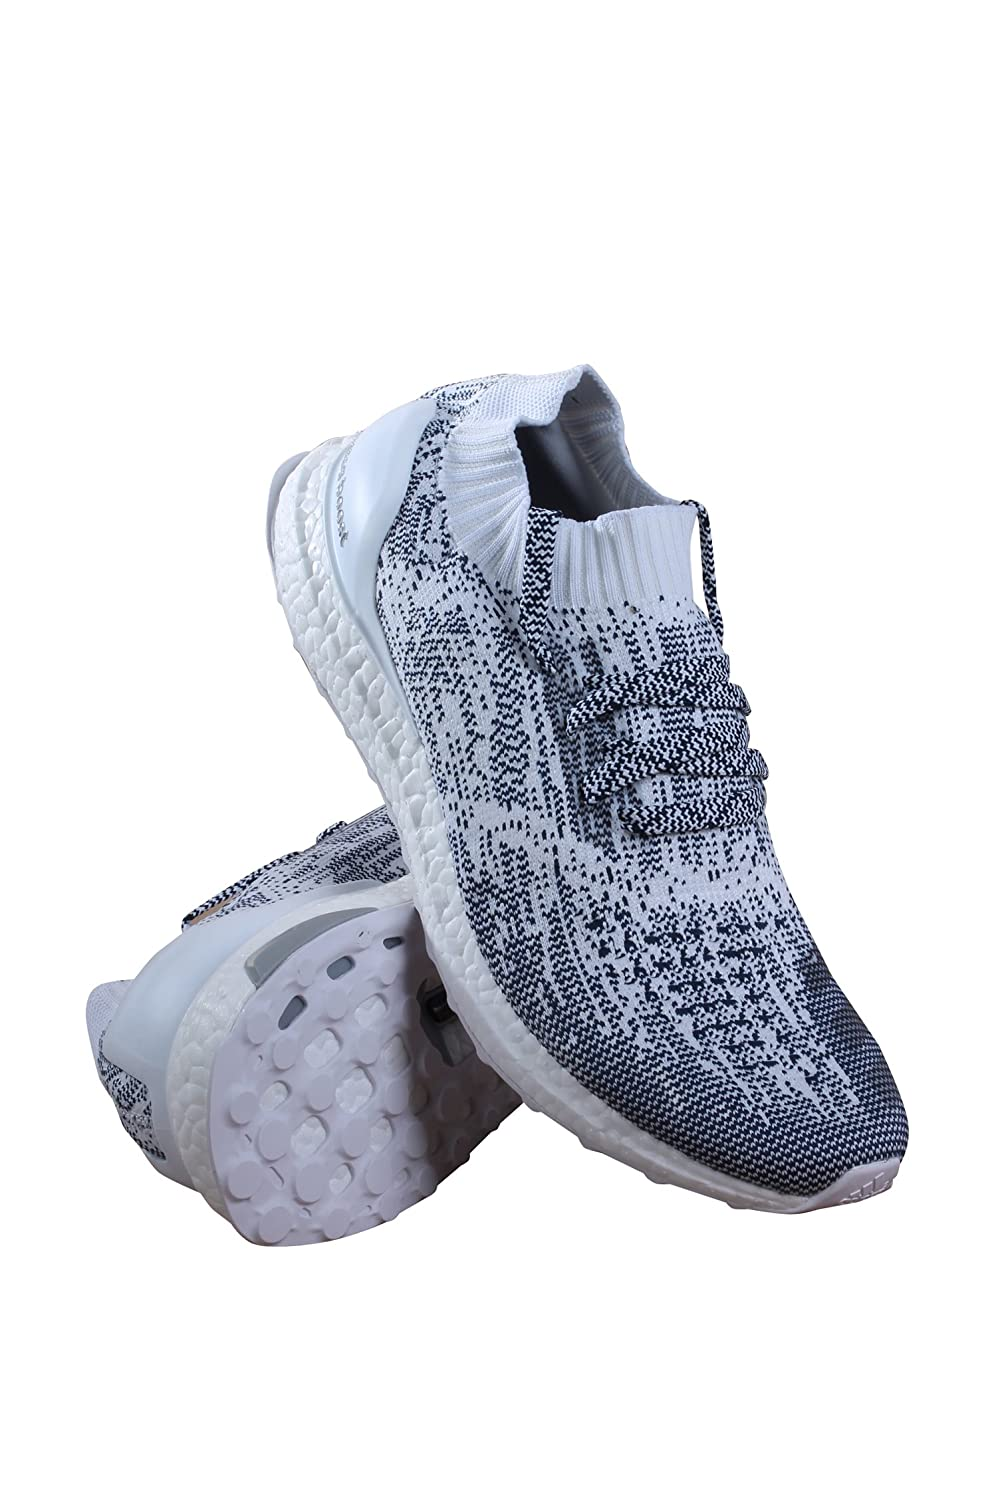 Adidas Men\u0027s UltraBoost Uncaged Running Shoe Non-Dyed, White, ...